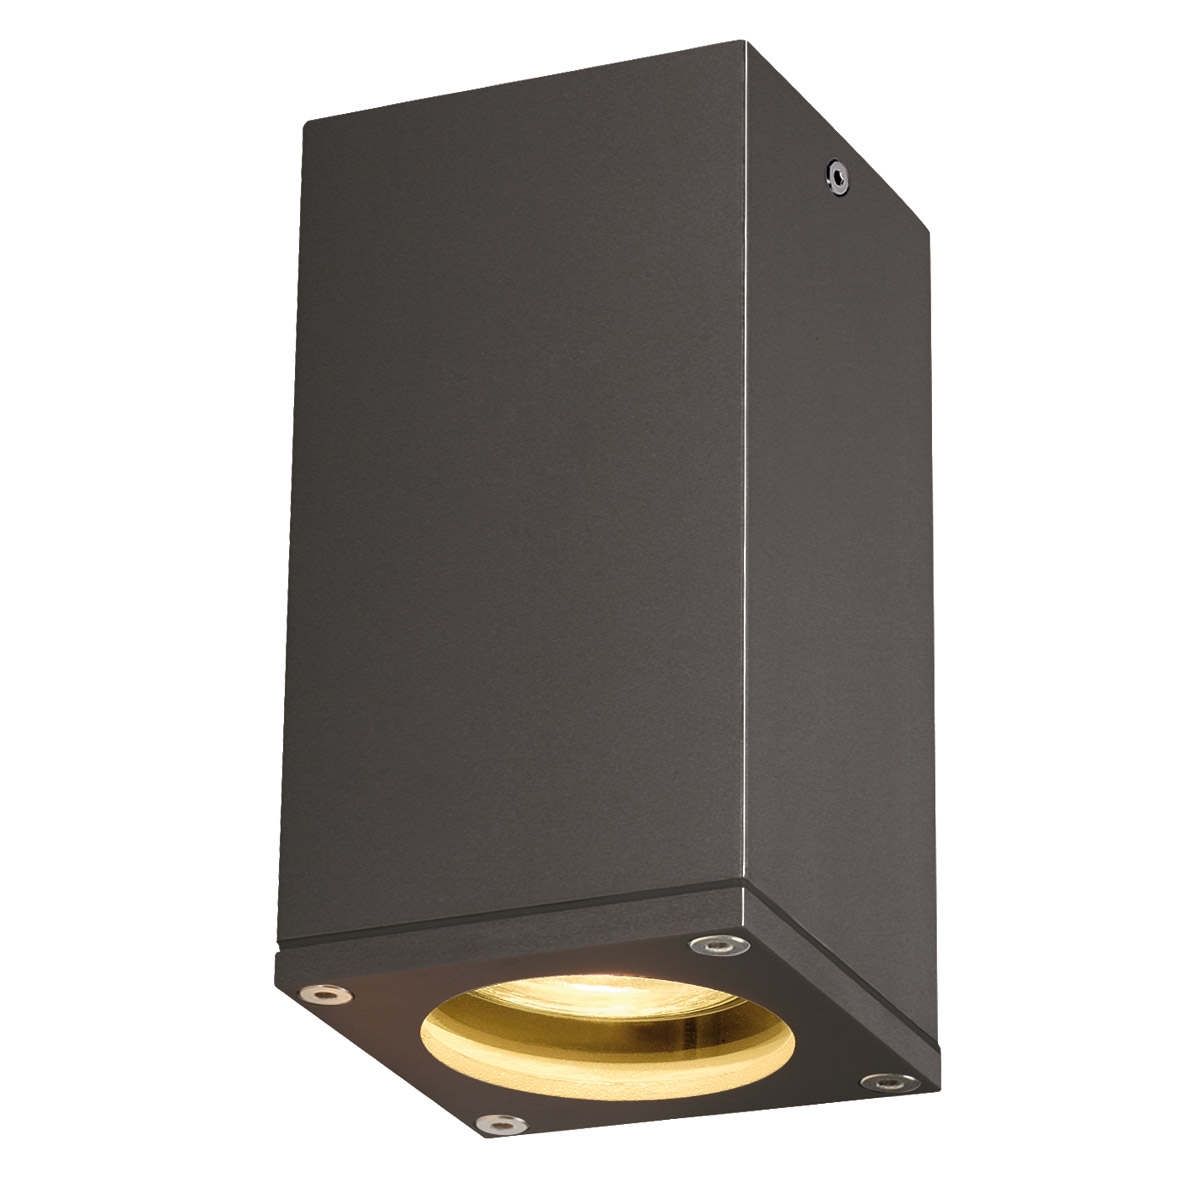 BIG THEO UP/DOWN OUT WALL LUMINAIRE, ES111, anthracite